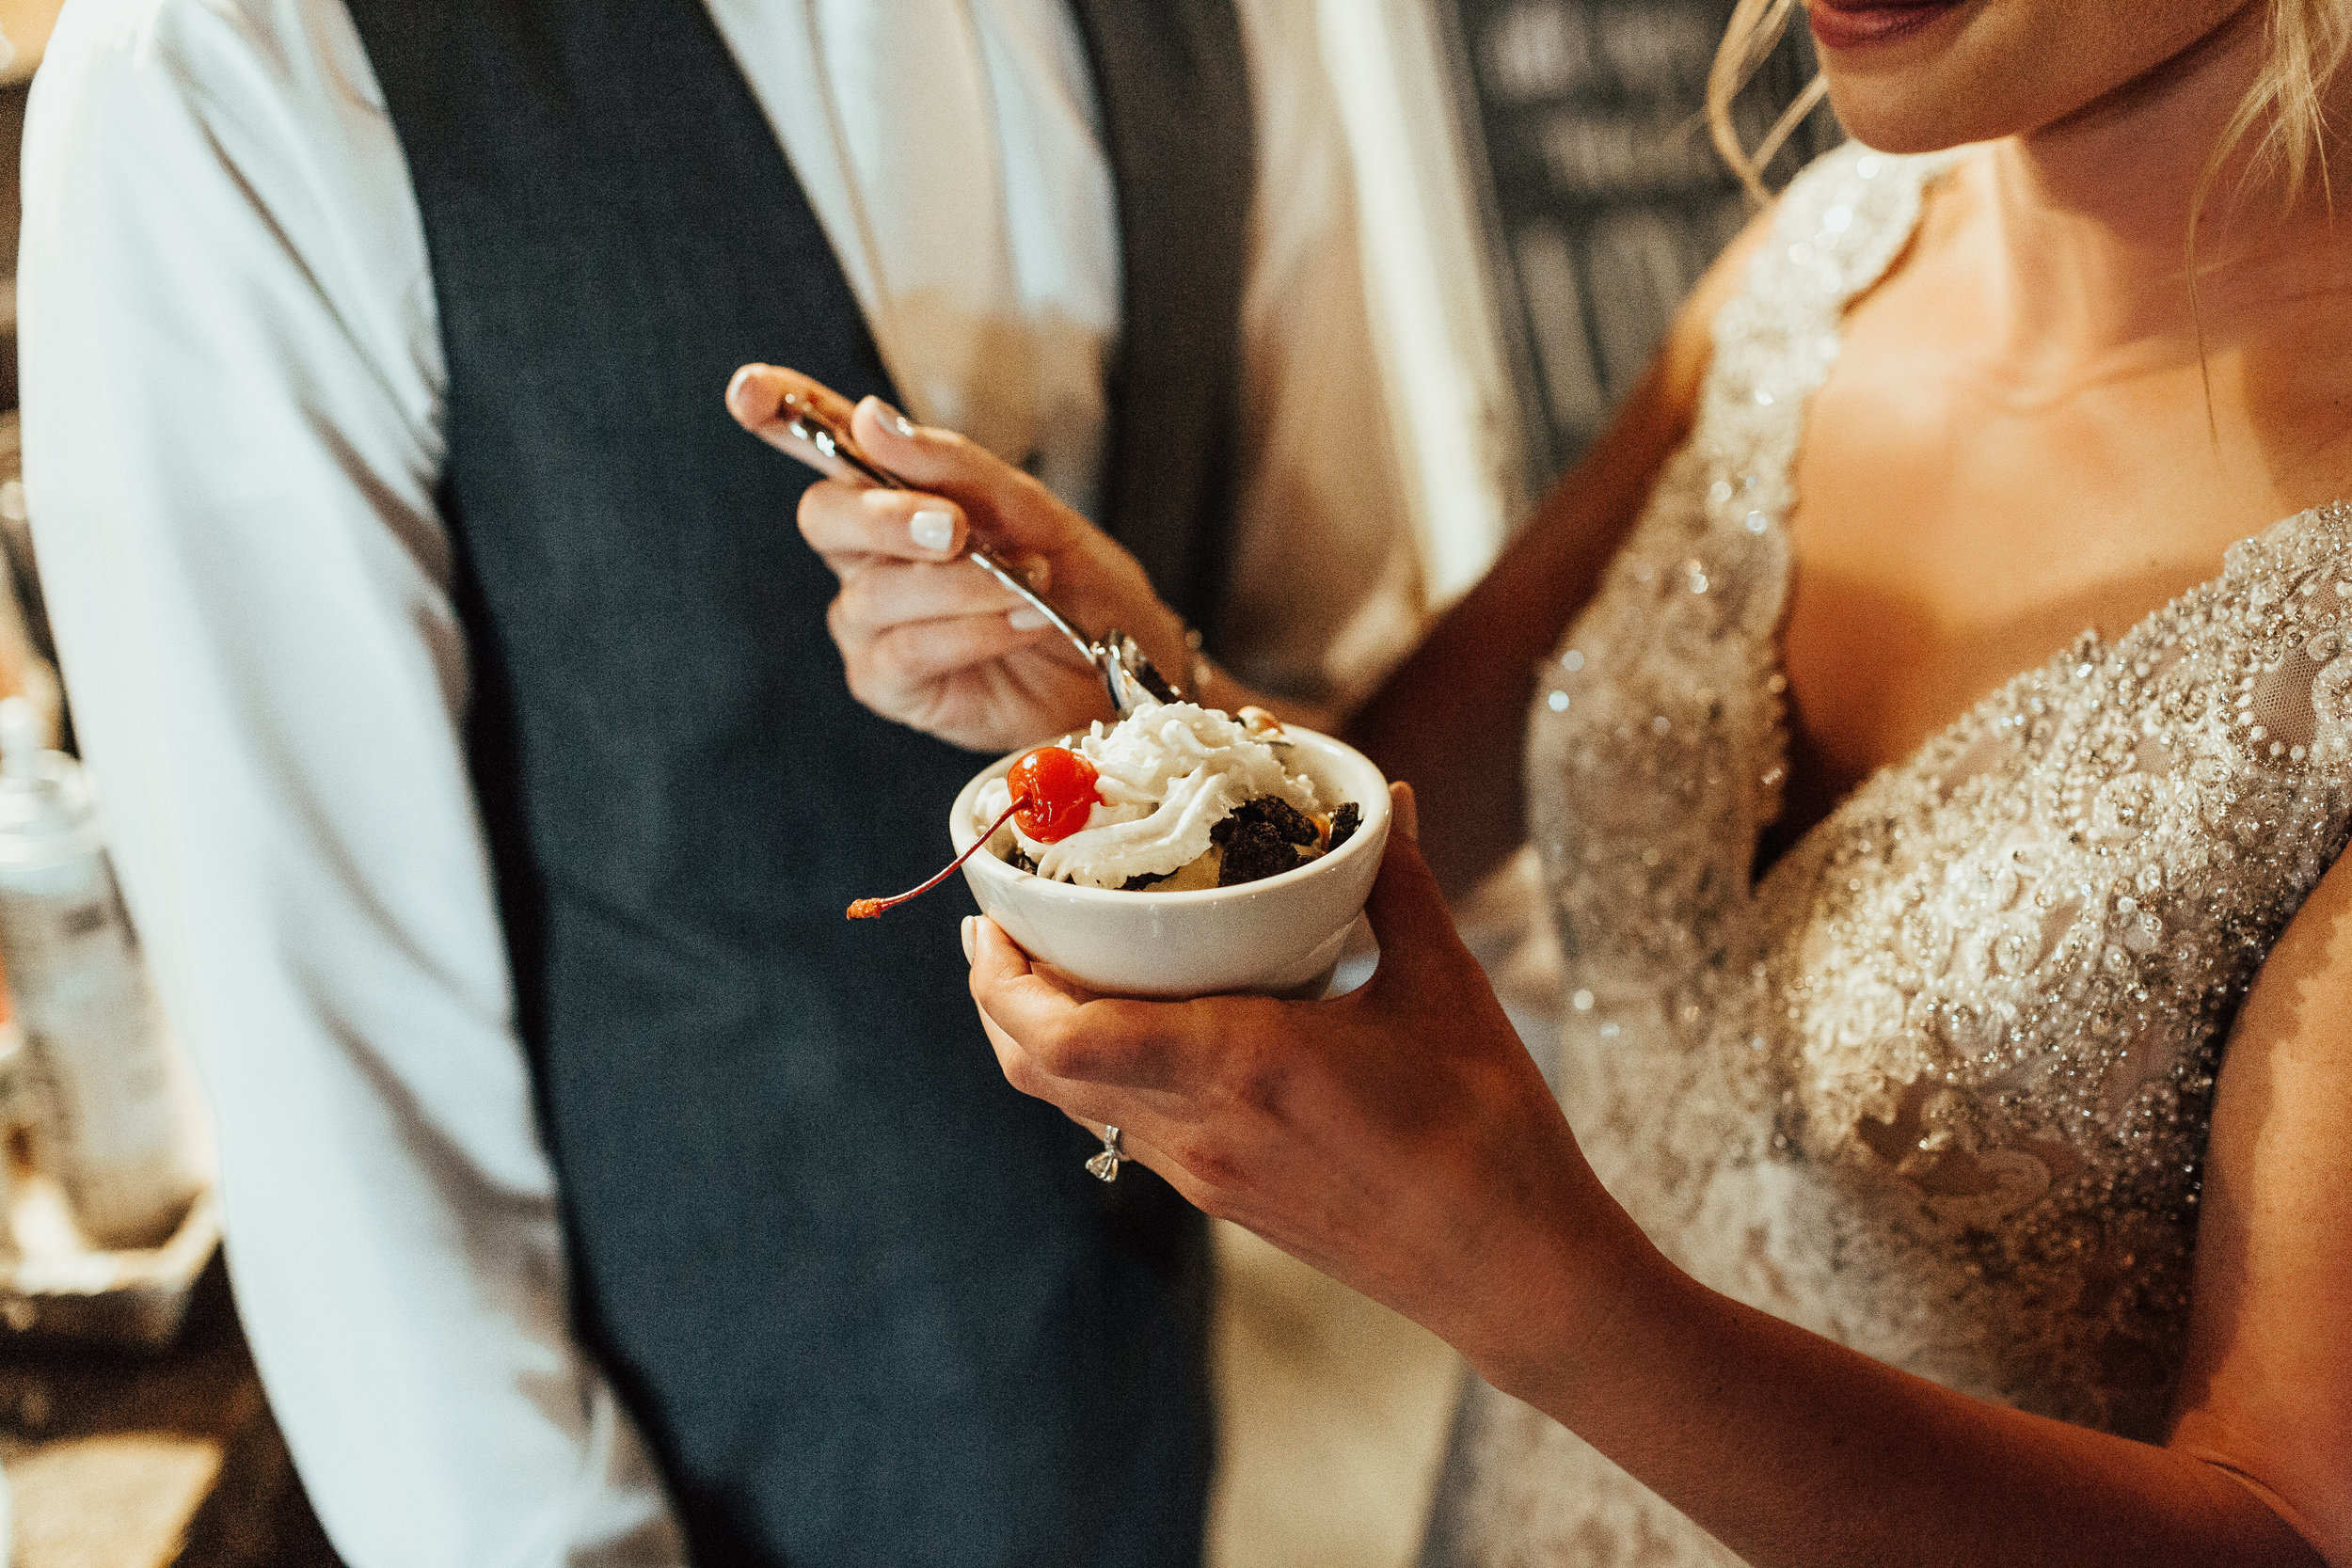 Janelle Elise Photography | Sixpence Events day of coordinating | wedding blog | bridgeman's ice cream | wedding planned and rentals by A Vintage Touch Weddings